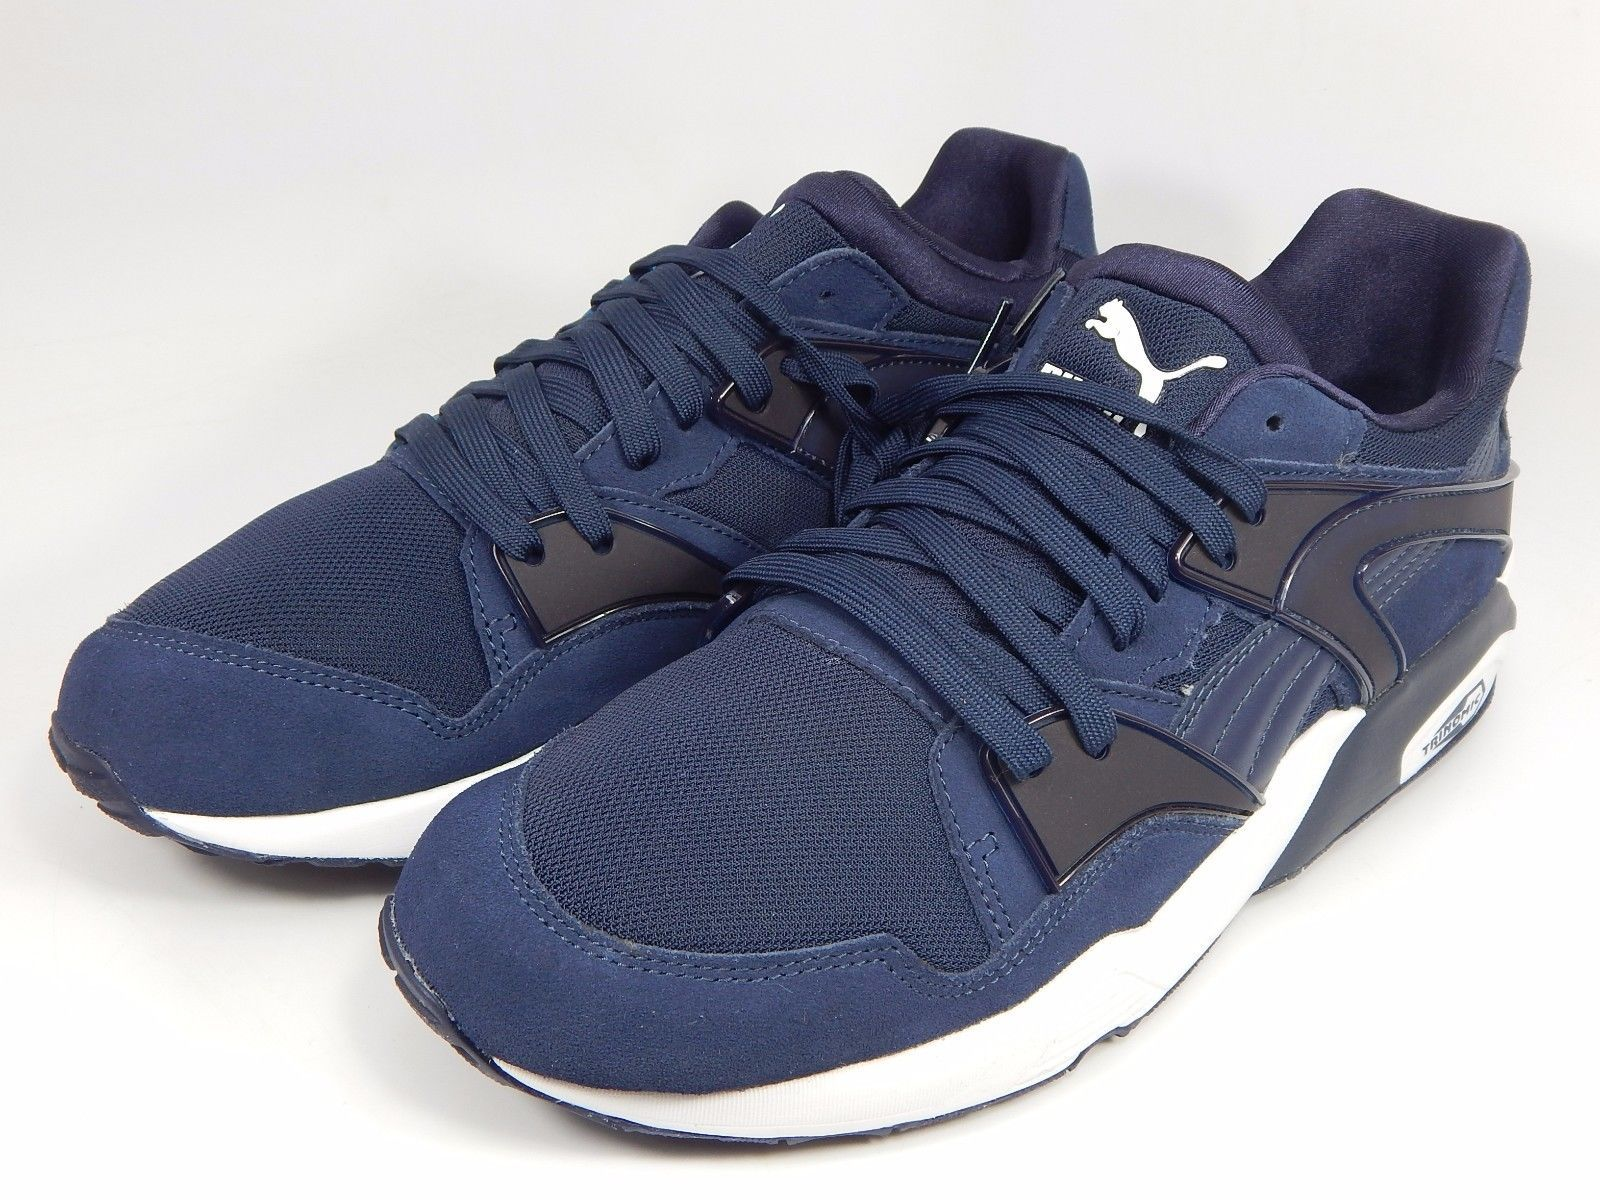 Puma Blaze Men's Running Shoes Size US 10 M (D) EU 43 Peacoat Blue 36013503